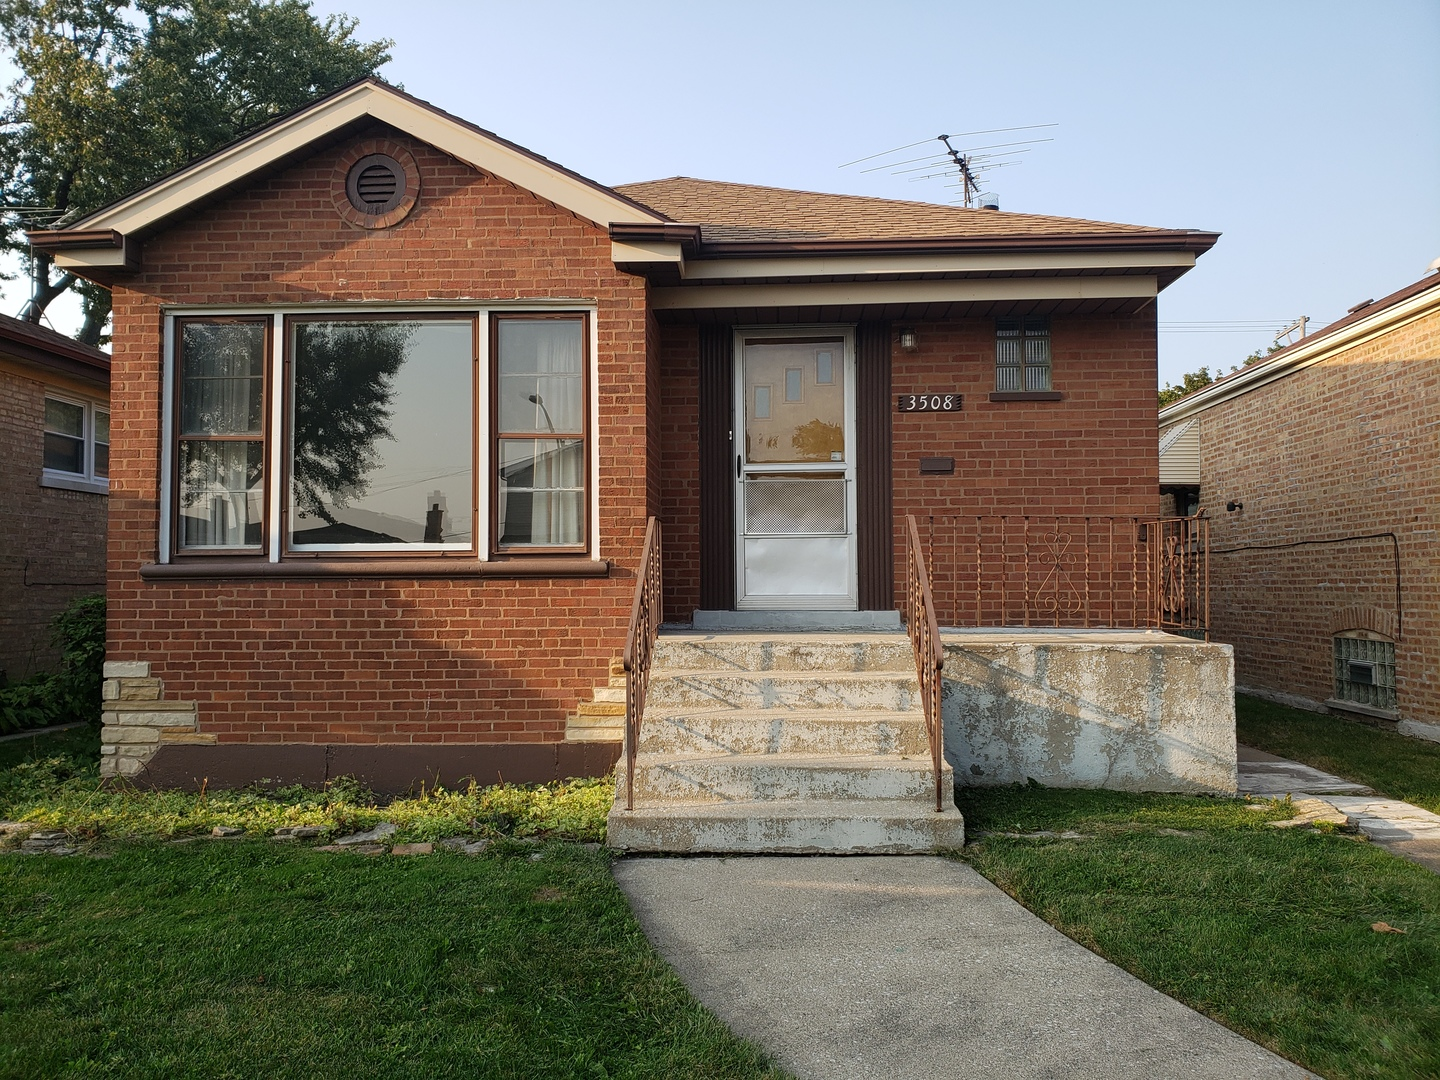 3508 W 84th Place, Chicago IL 60652